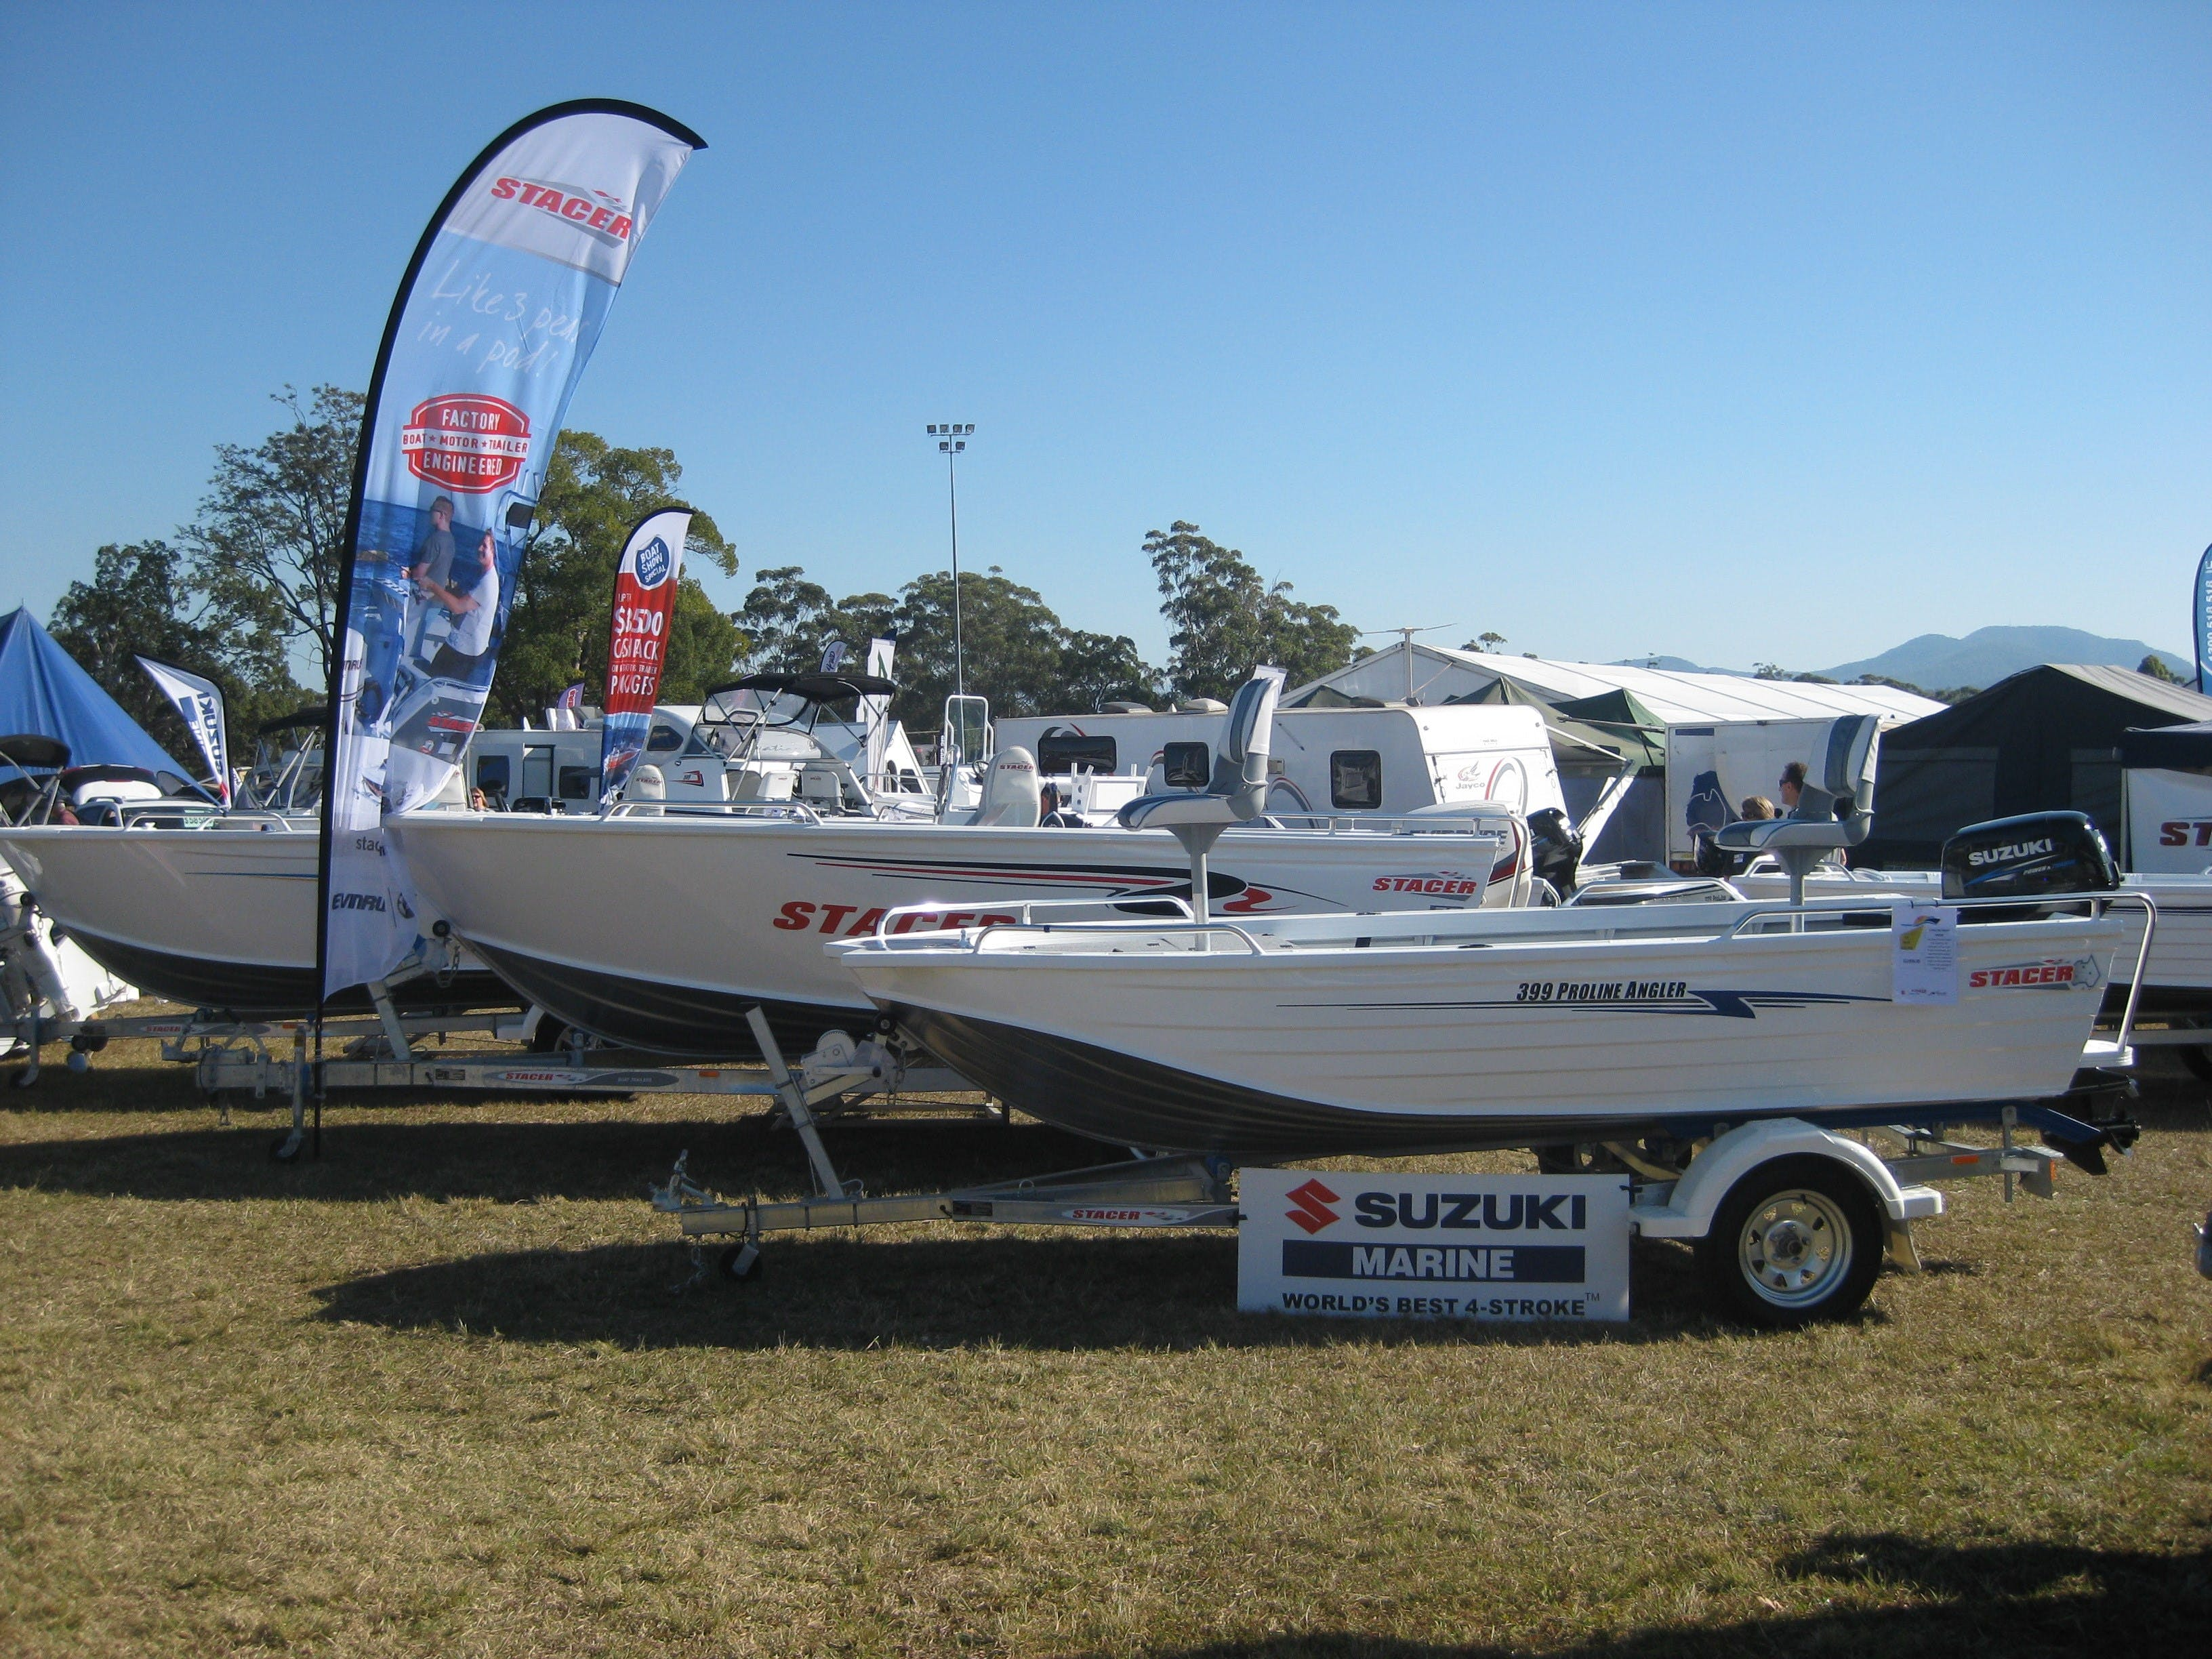 Mid North Coast Caravan Camping 4WD Fish and Boat Show - Accommodation Batemans Bay